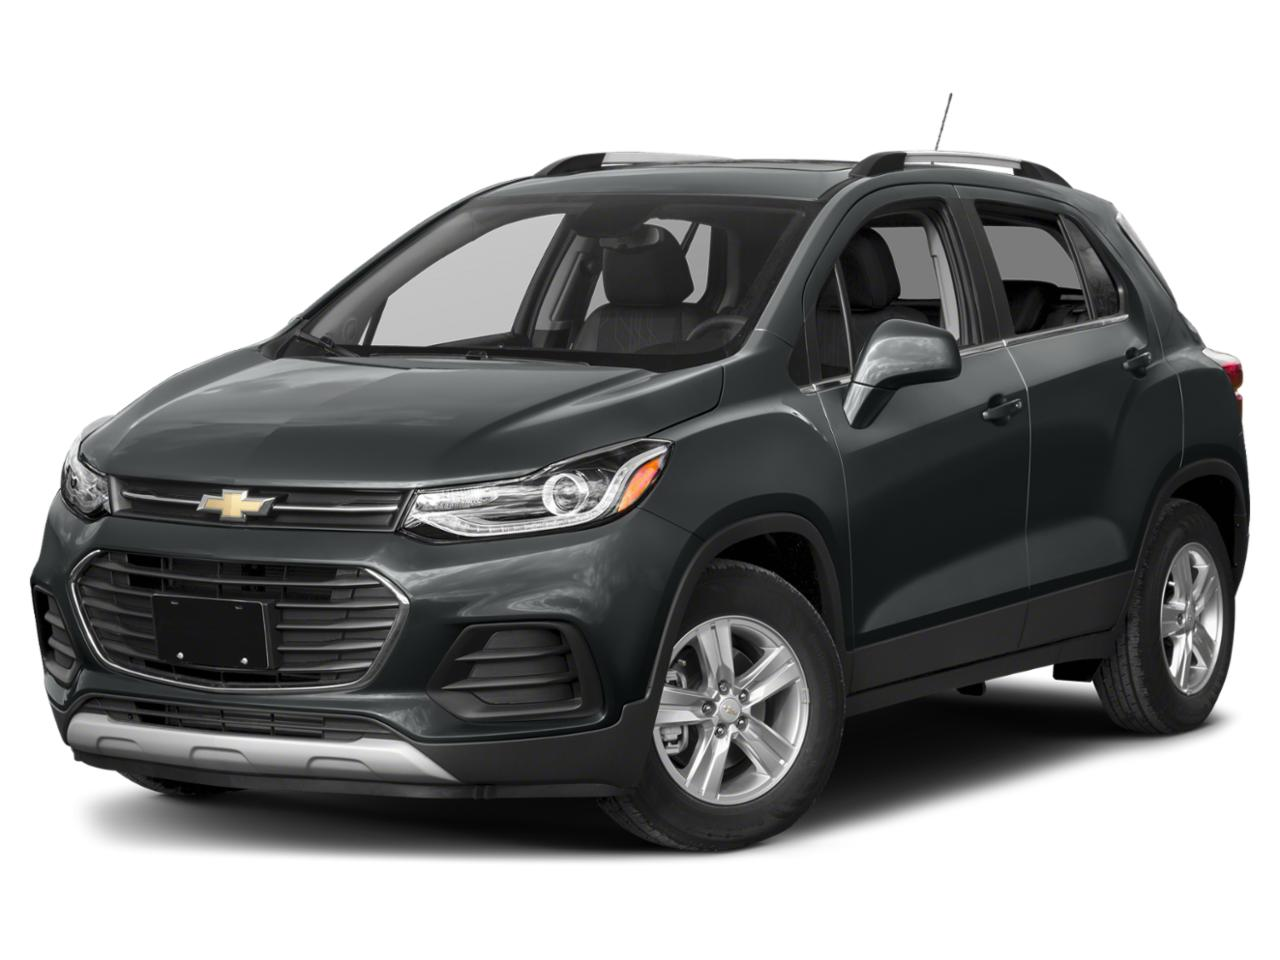 2019 Chevrolet Trax Vehicle Photo in Lawrenceville, NJ 08648